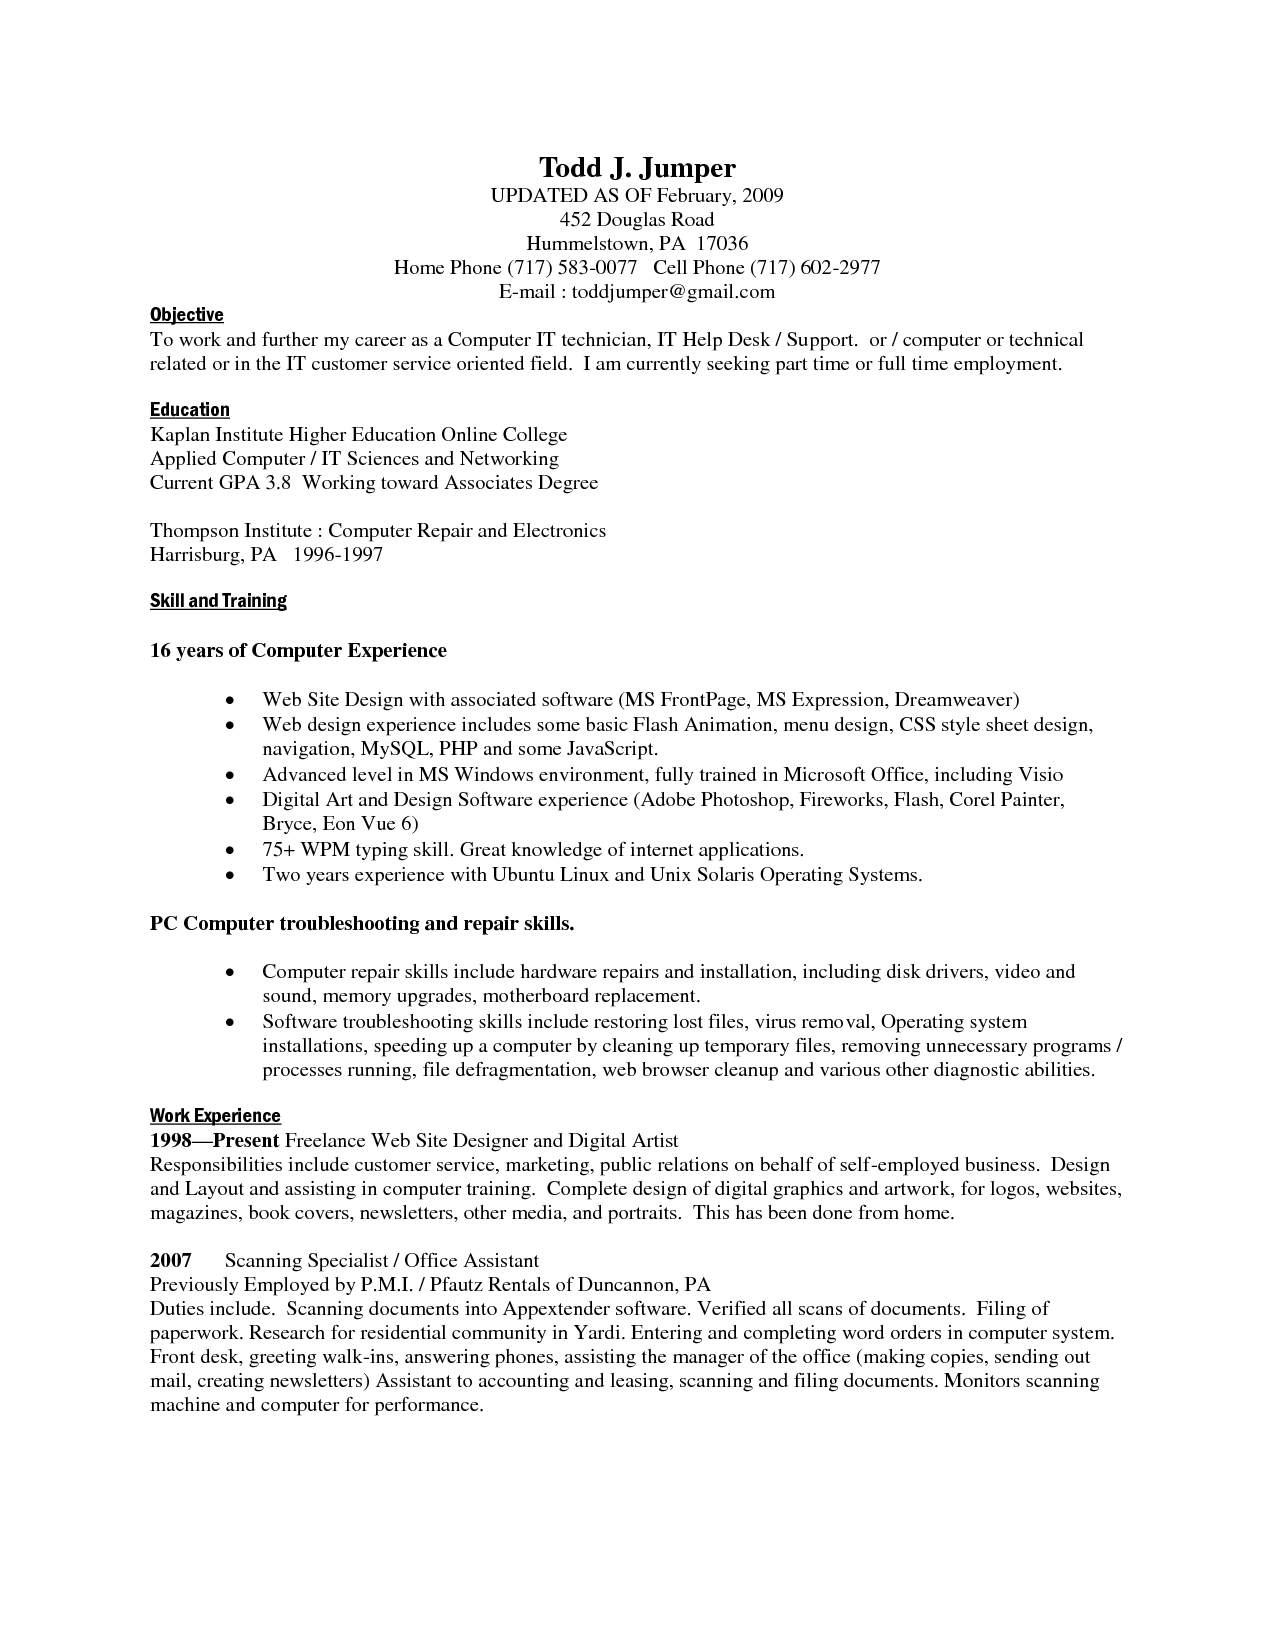 Skill Resume Format Computer Skills On Sample Resume Http Resumecareer